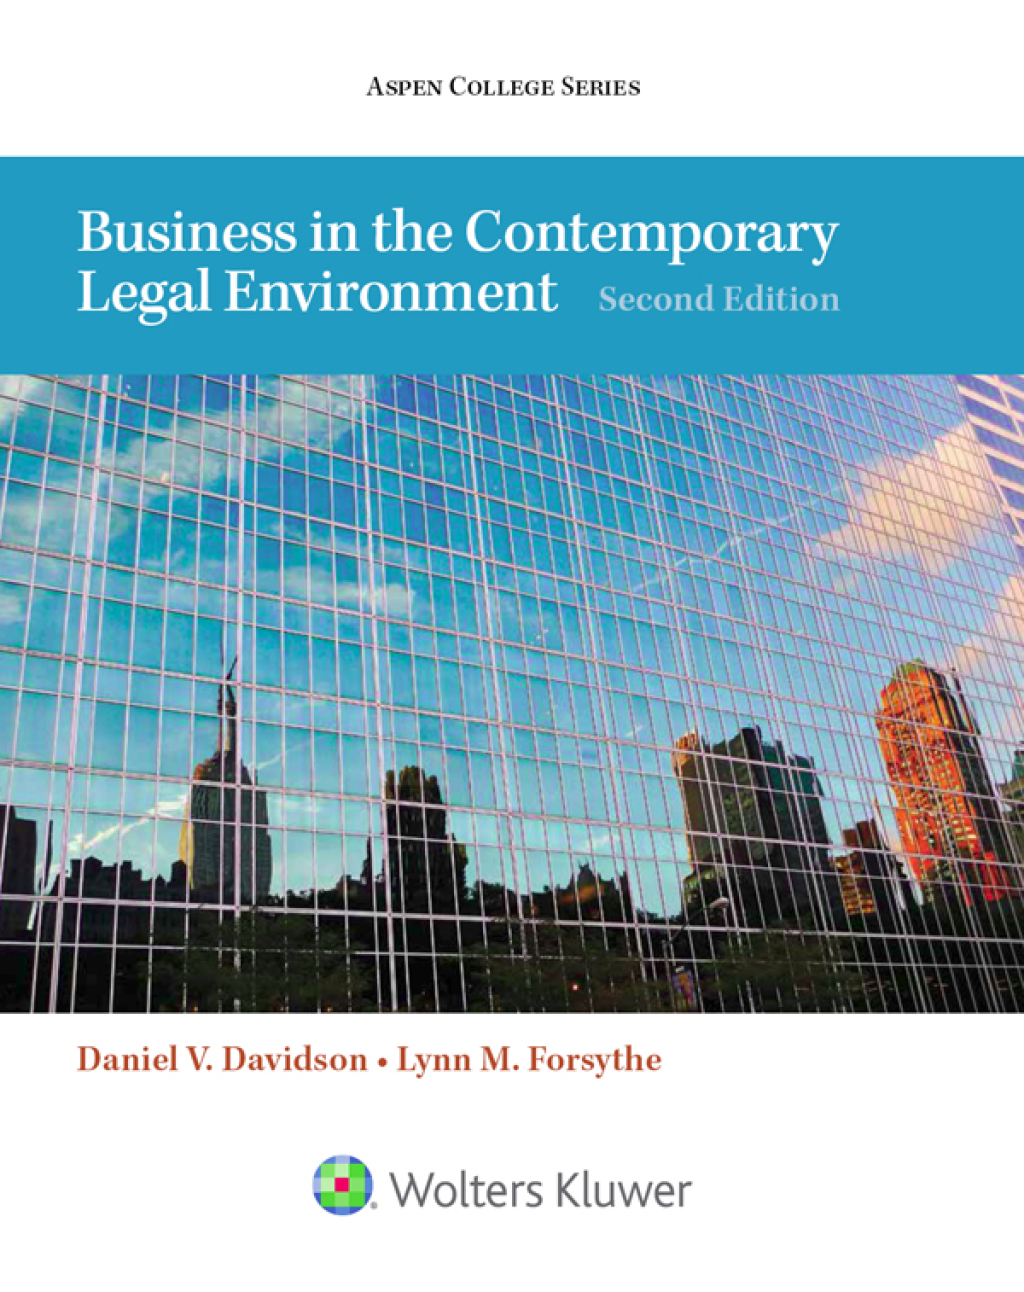 Compare legal environment ebook ebooks miscellaneous prices and buy business in the contemporary legal environment ebook ebooks fandeluxe Gallery